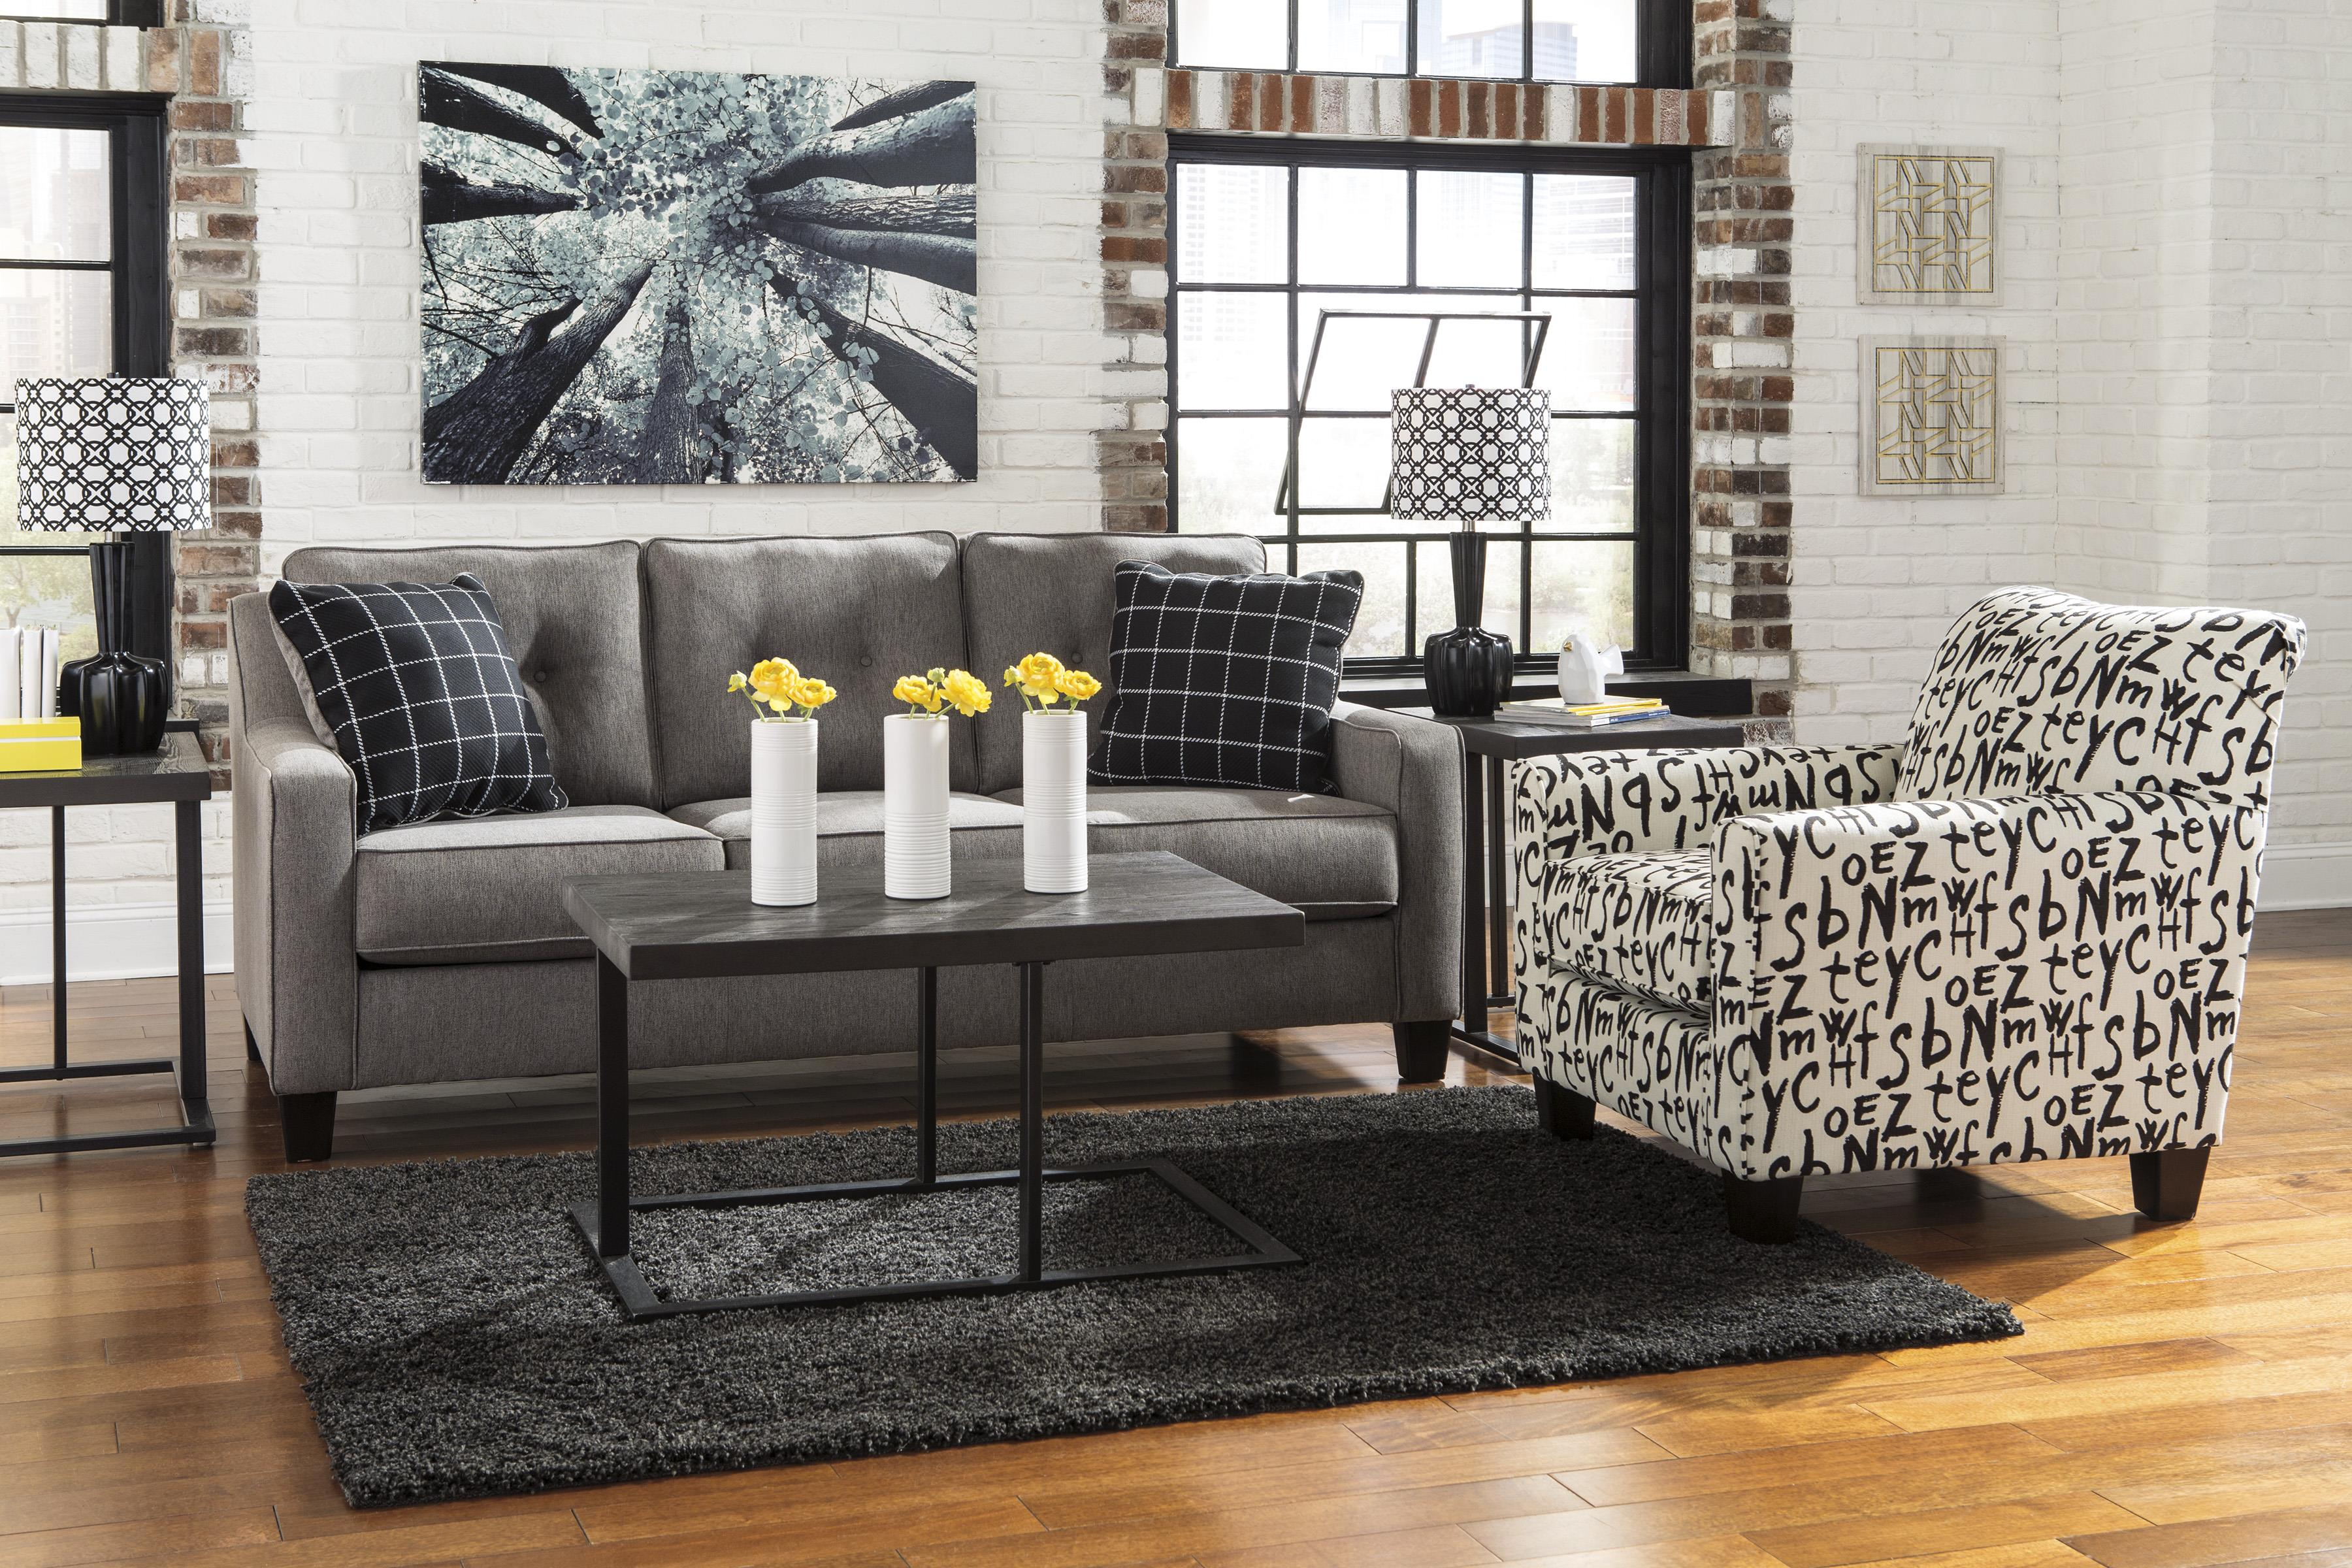 Accent Chair with Graffiti Style Text Fabric by Benchcraft